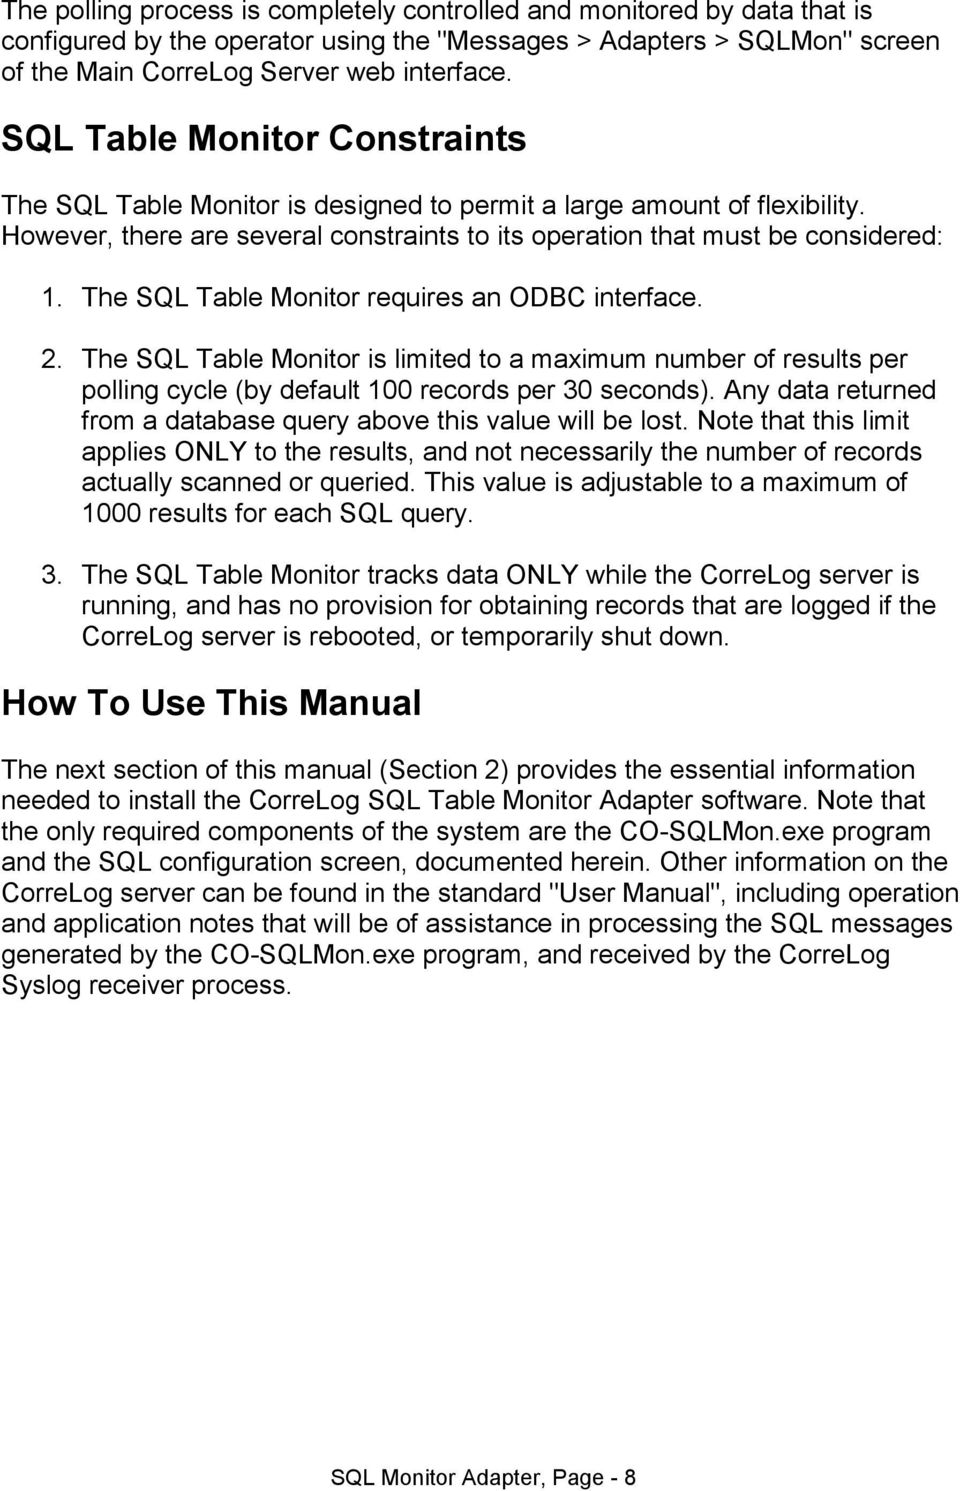 The SQL Table Monitor requires an ODBC interface. 2. The SQL Table Monitor is limited to a maximum number of results per polling cycle (by default 100 records per 30 seconds).